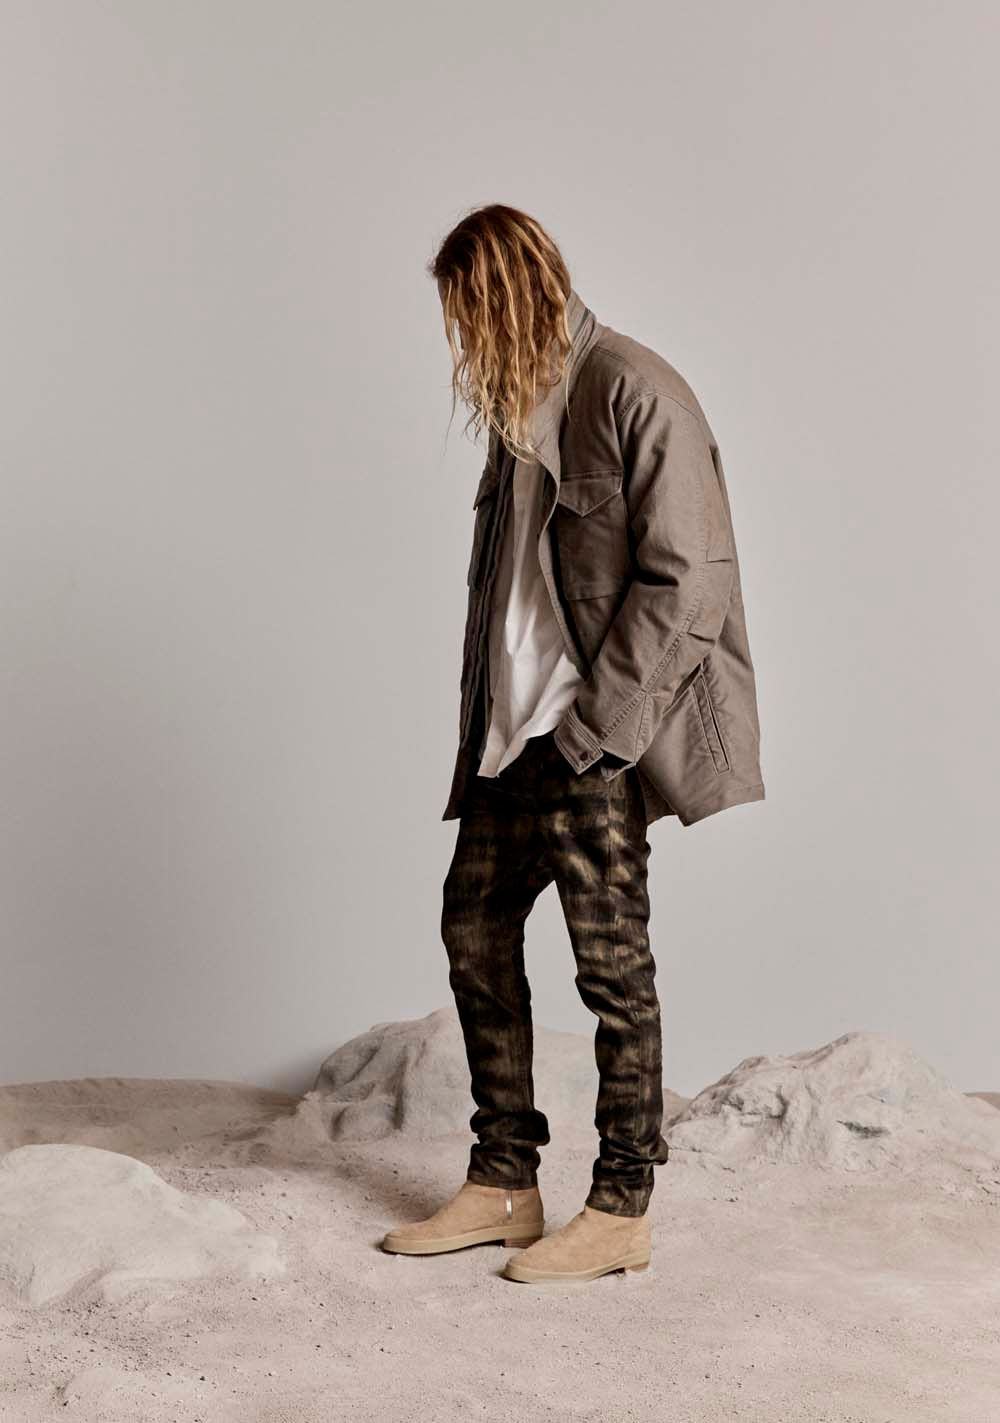 https_%2F%2Fhypebeast.com%2Fimage%2F2018%2F09%2Ffear-of-god-6-sixth-collection-jared-leto-nike-24.jpg